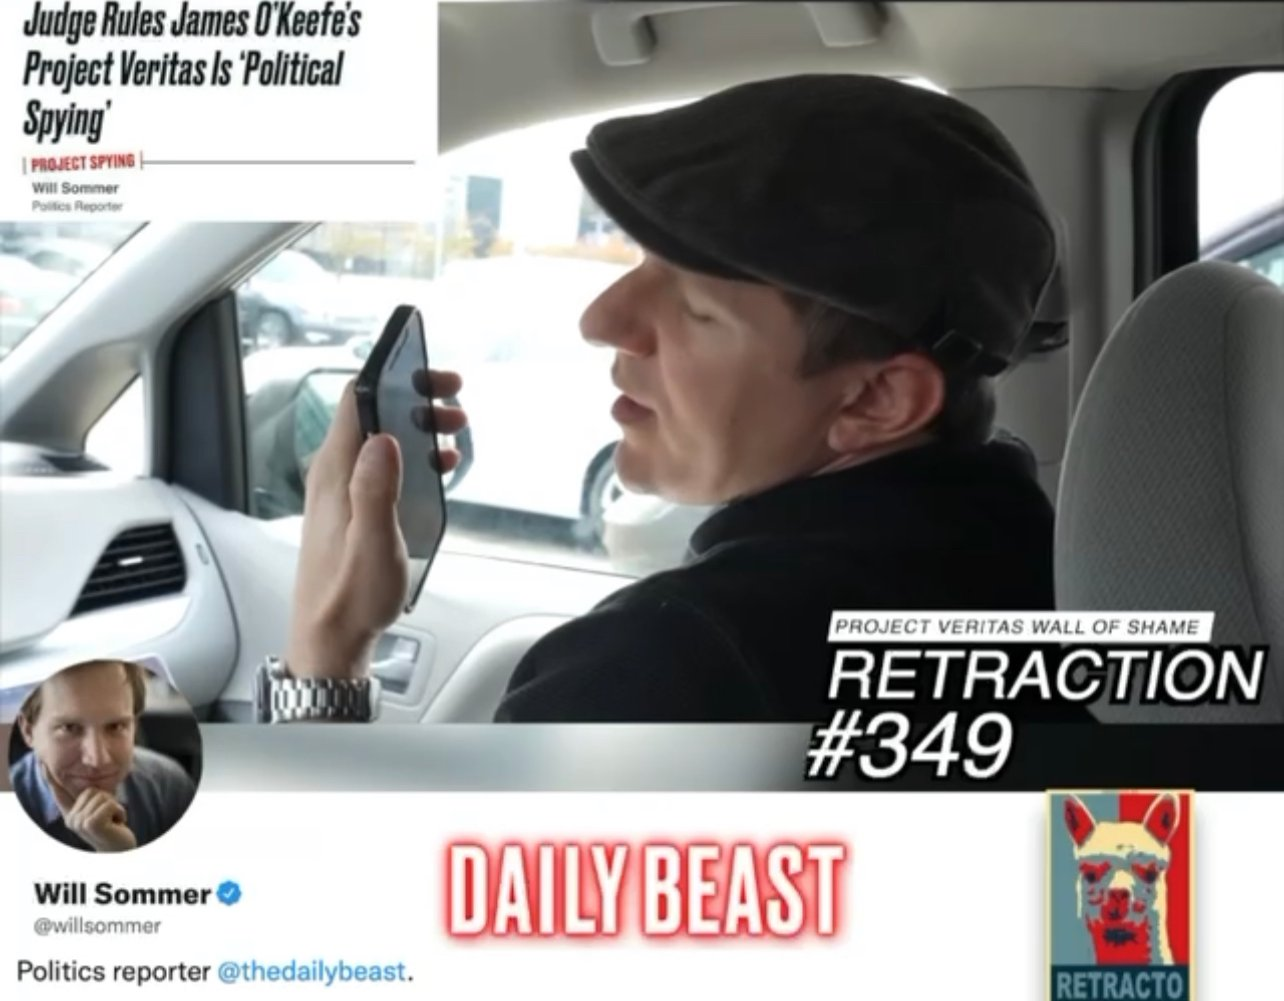 """WATCH: """"Fastest Retraction In PV History"""" – Project Veritas James O'Keefe Calls Will Sommer's BS (VIDEO)"""